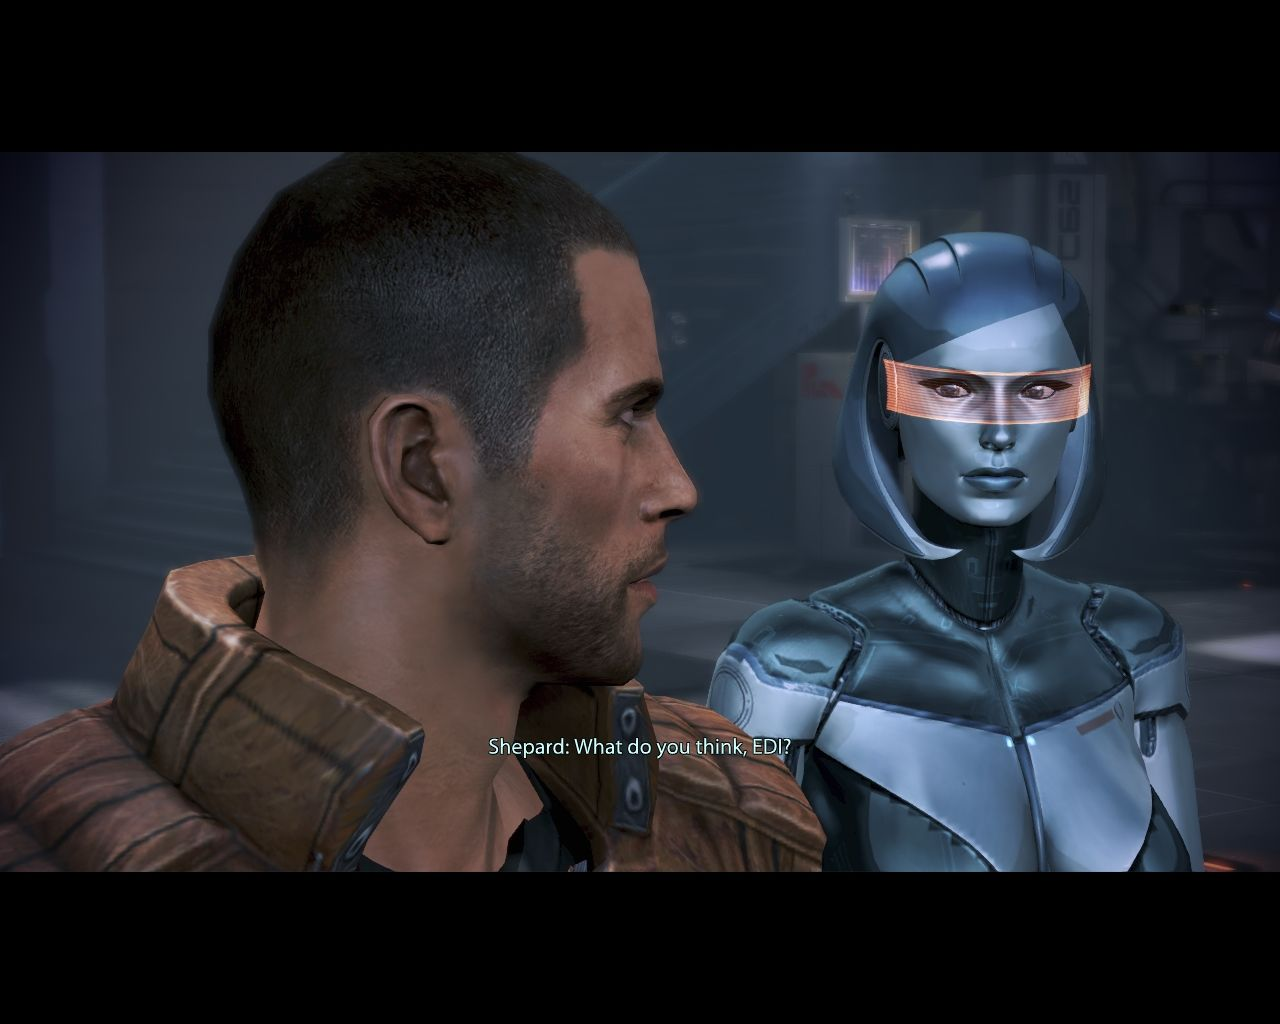 Mass Effect 3: Leviathan Windows Shepard asks for EDI's help.